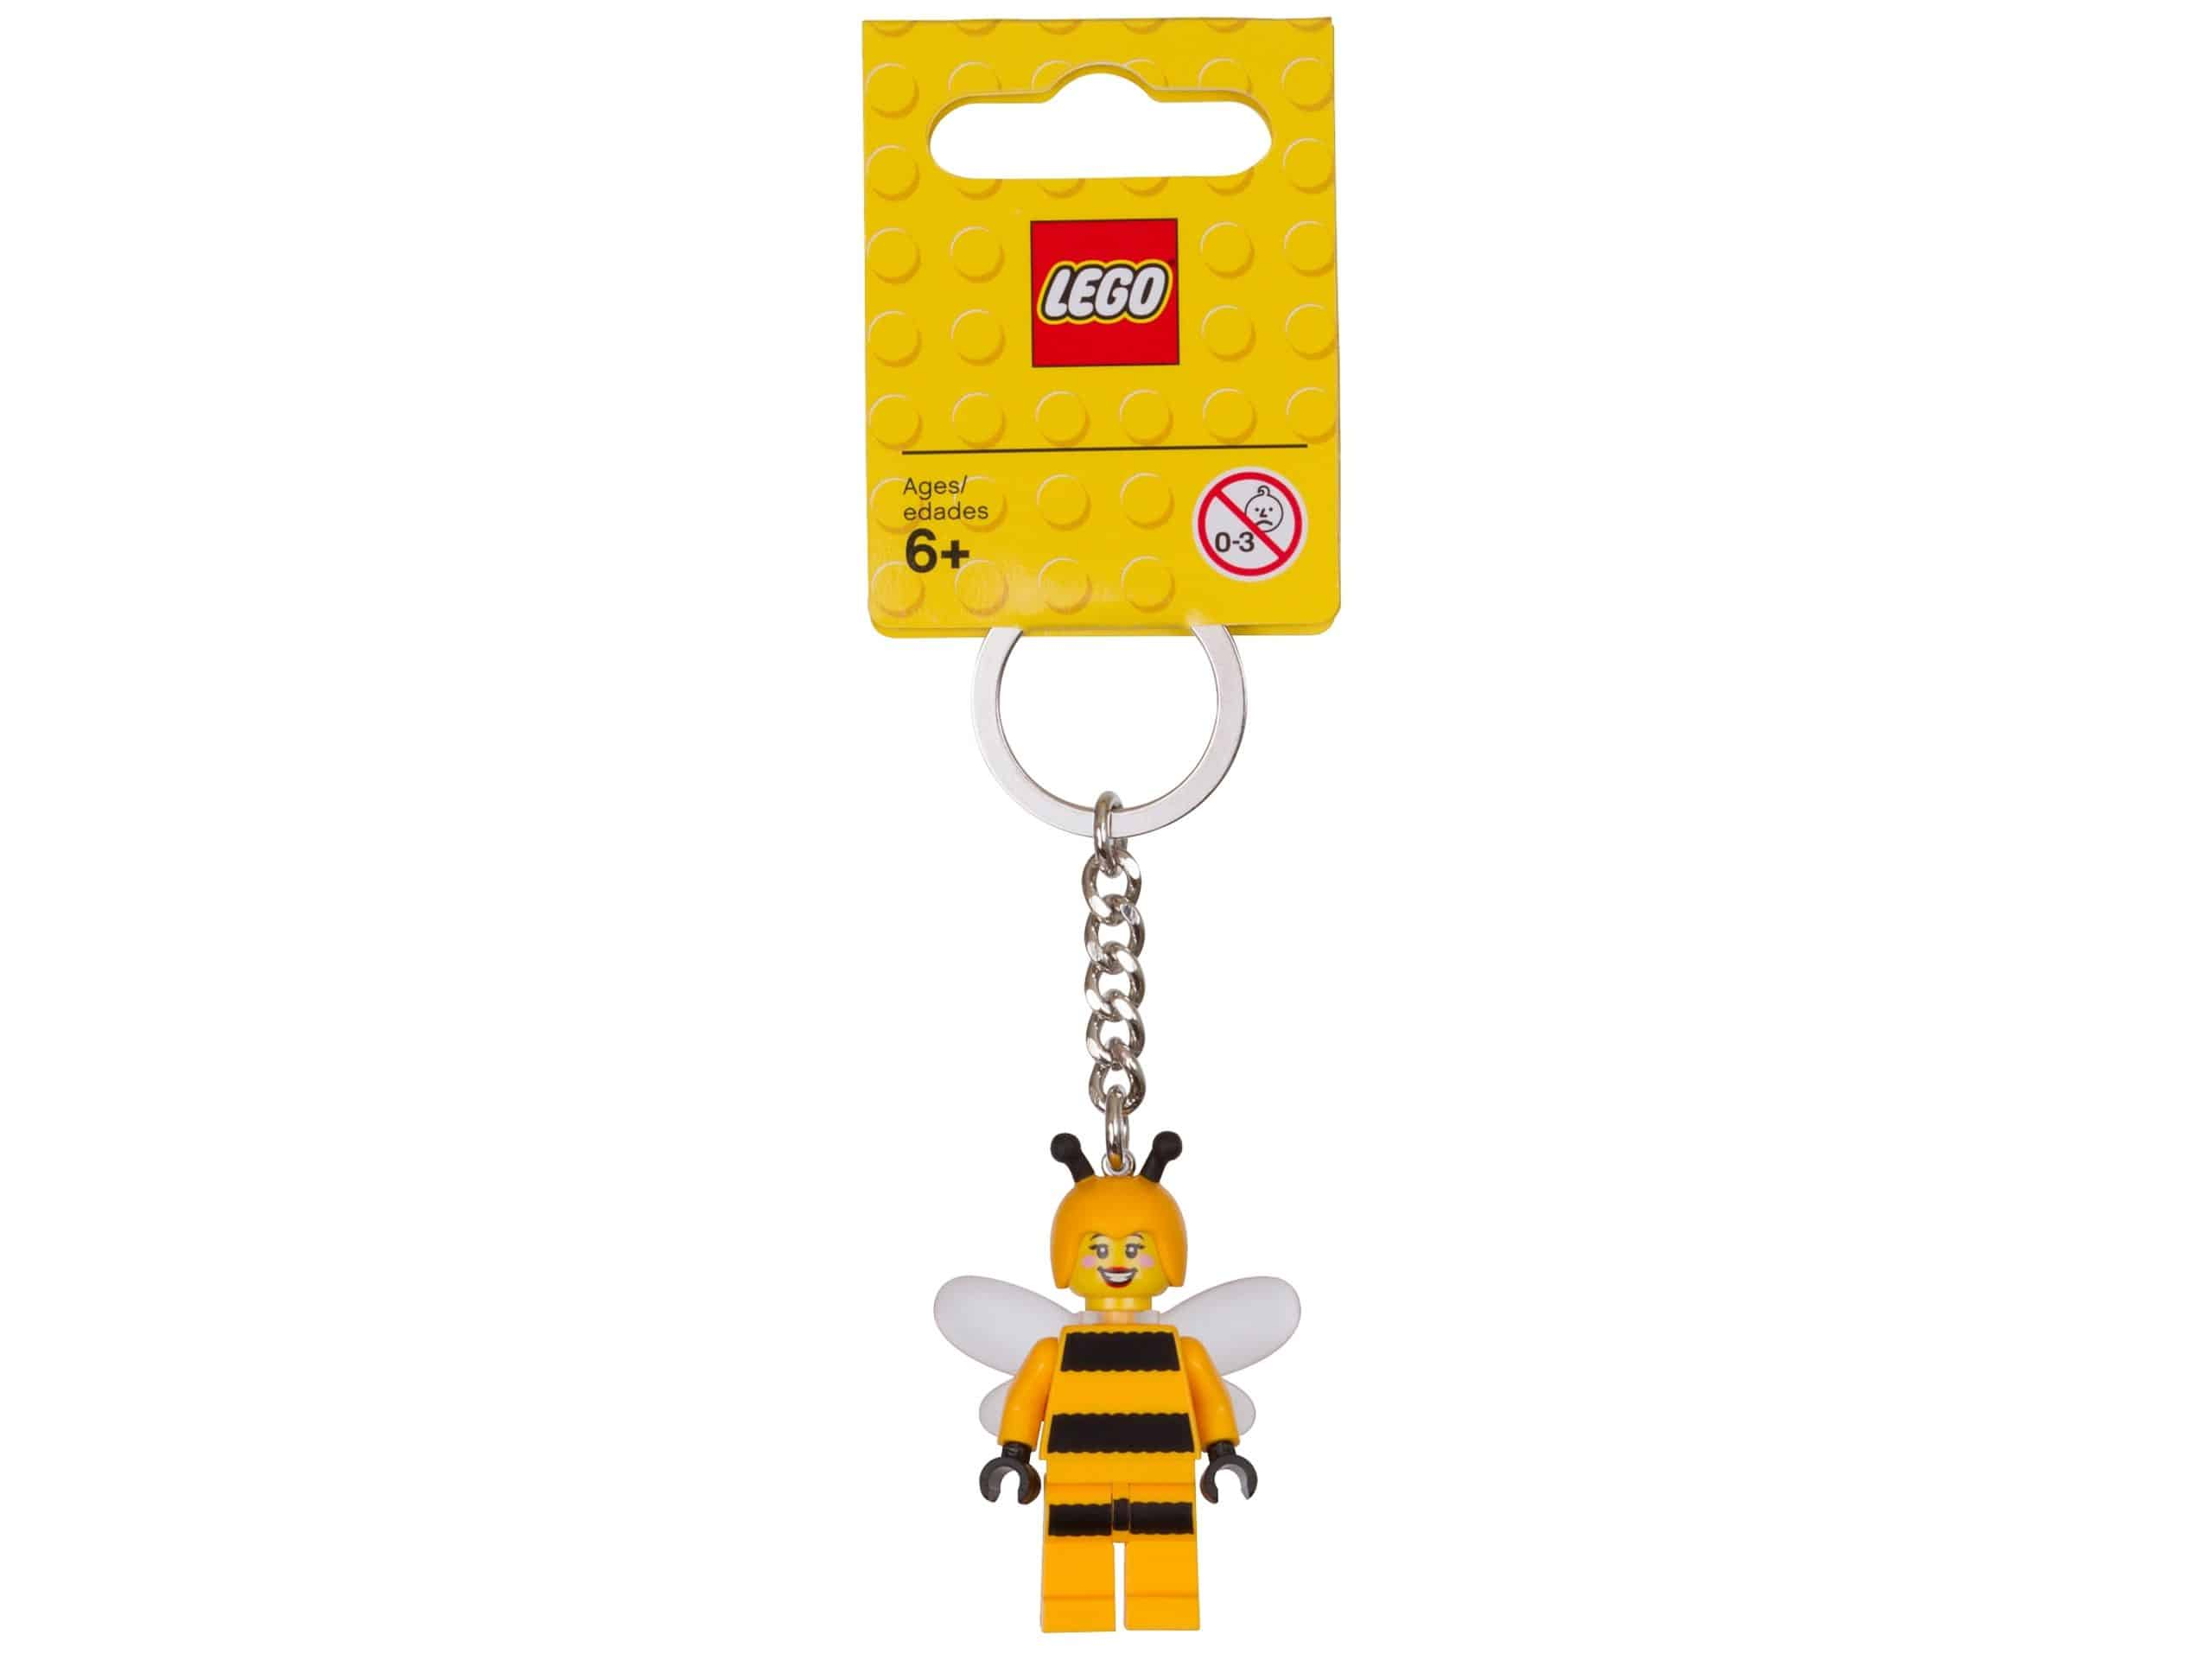 853572 official lego 853572 shop se scaled